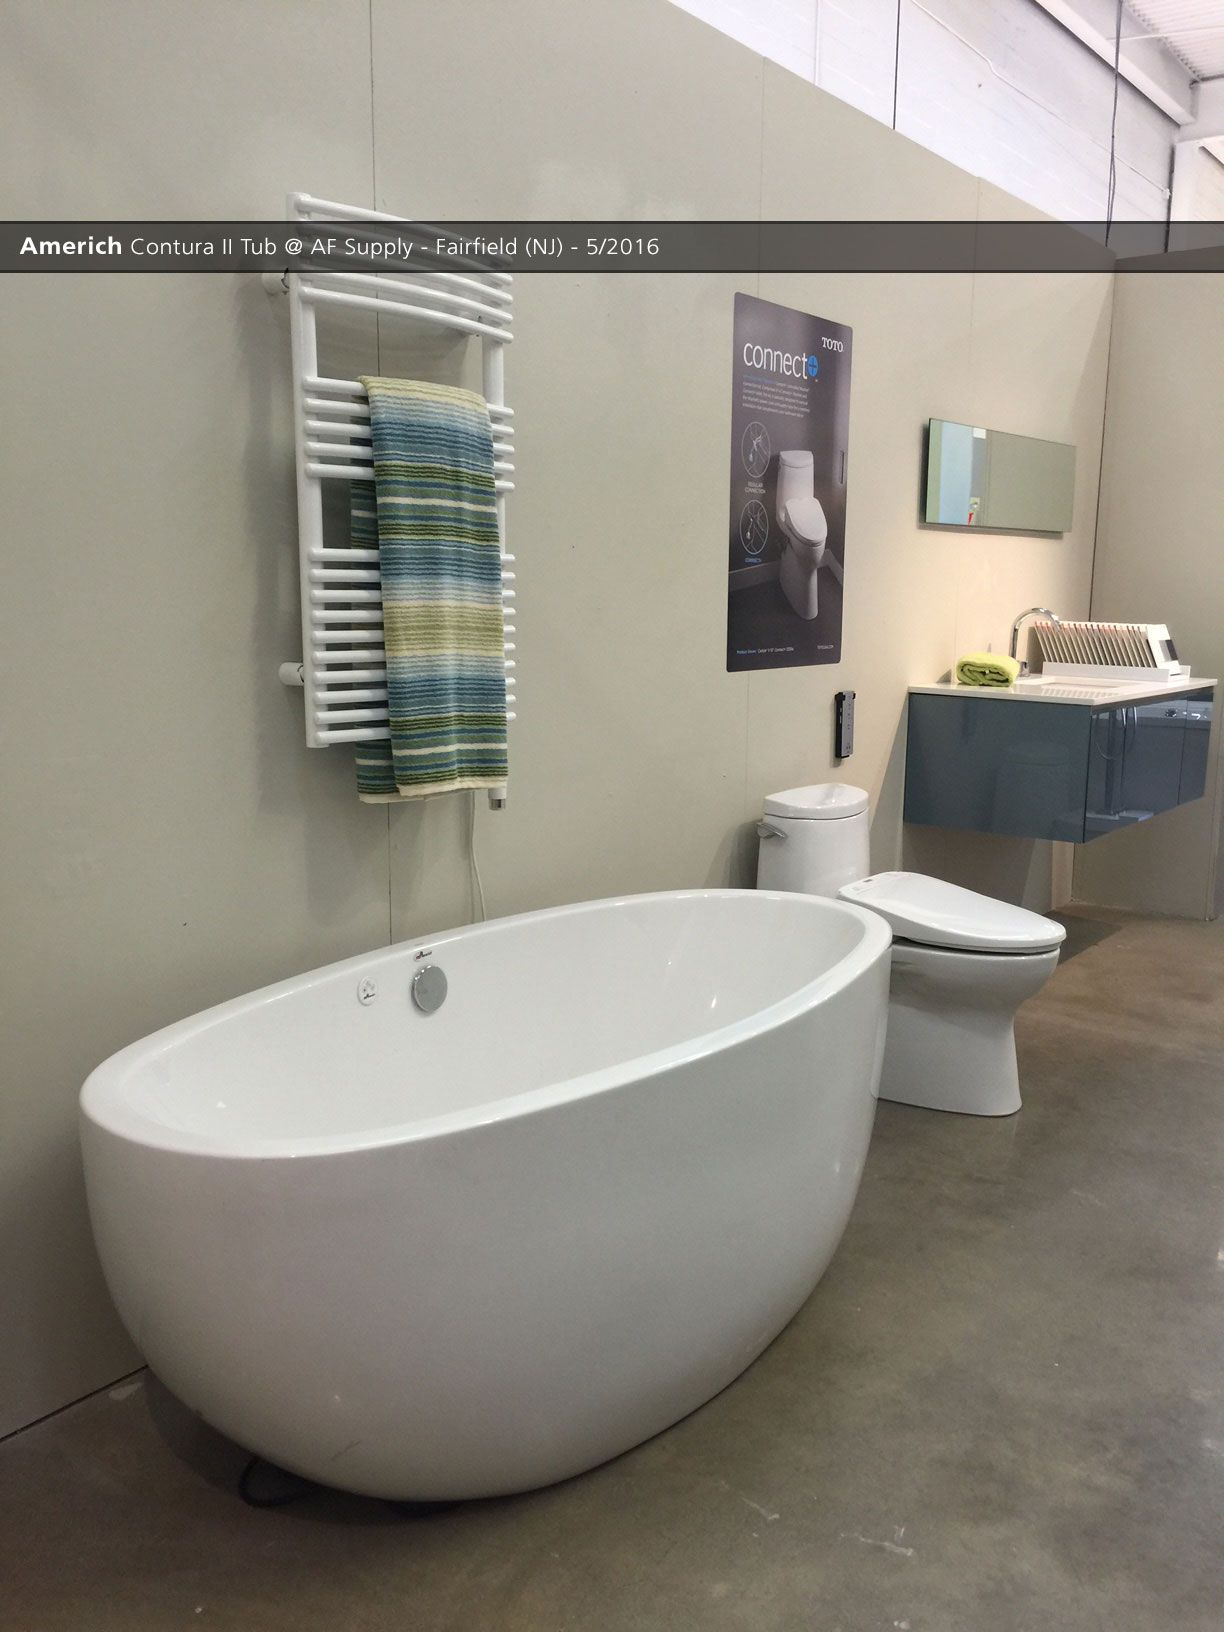 Americh Contura II Tub @ AF Supply - Fairfield (NJ) - 5 ...